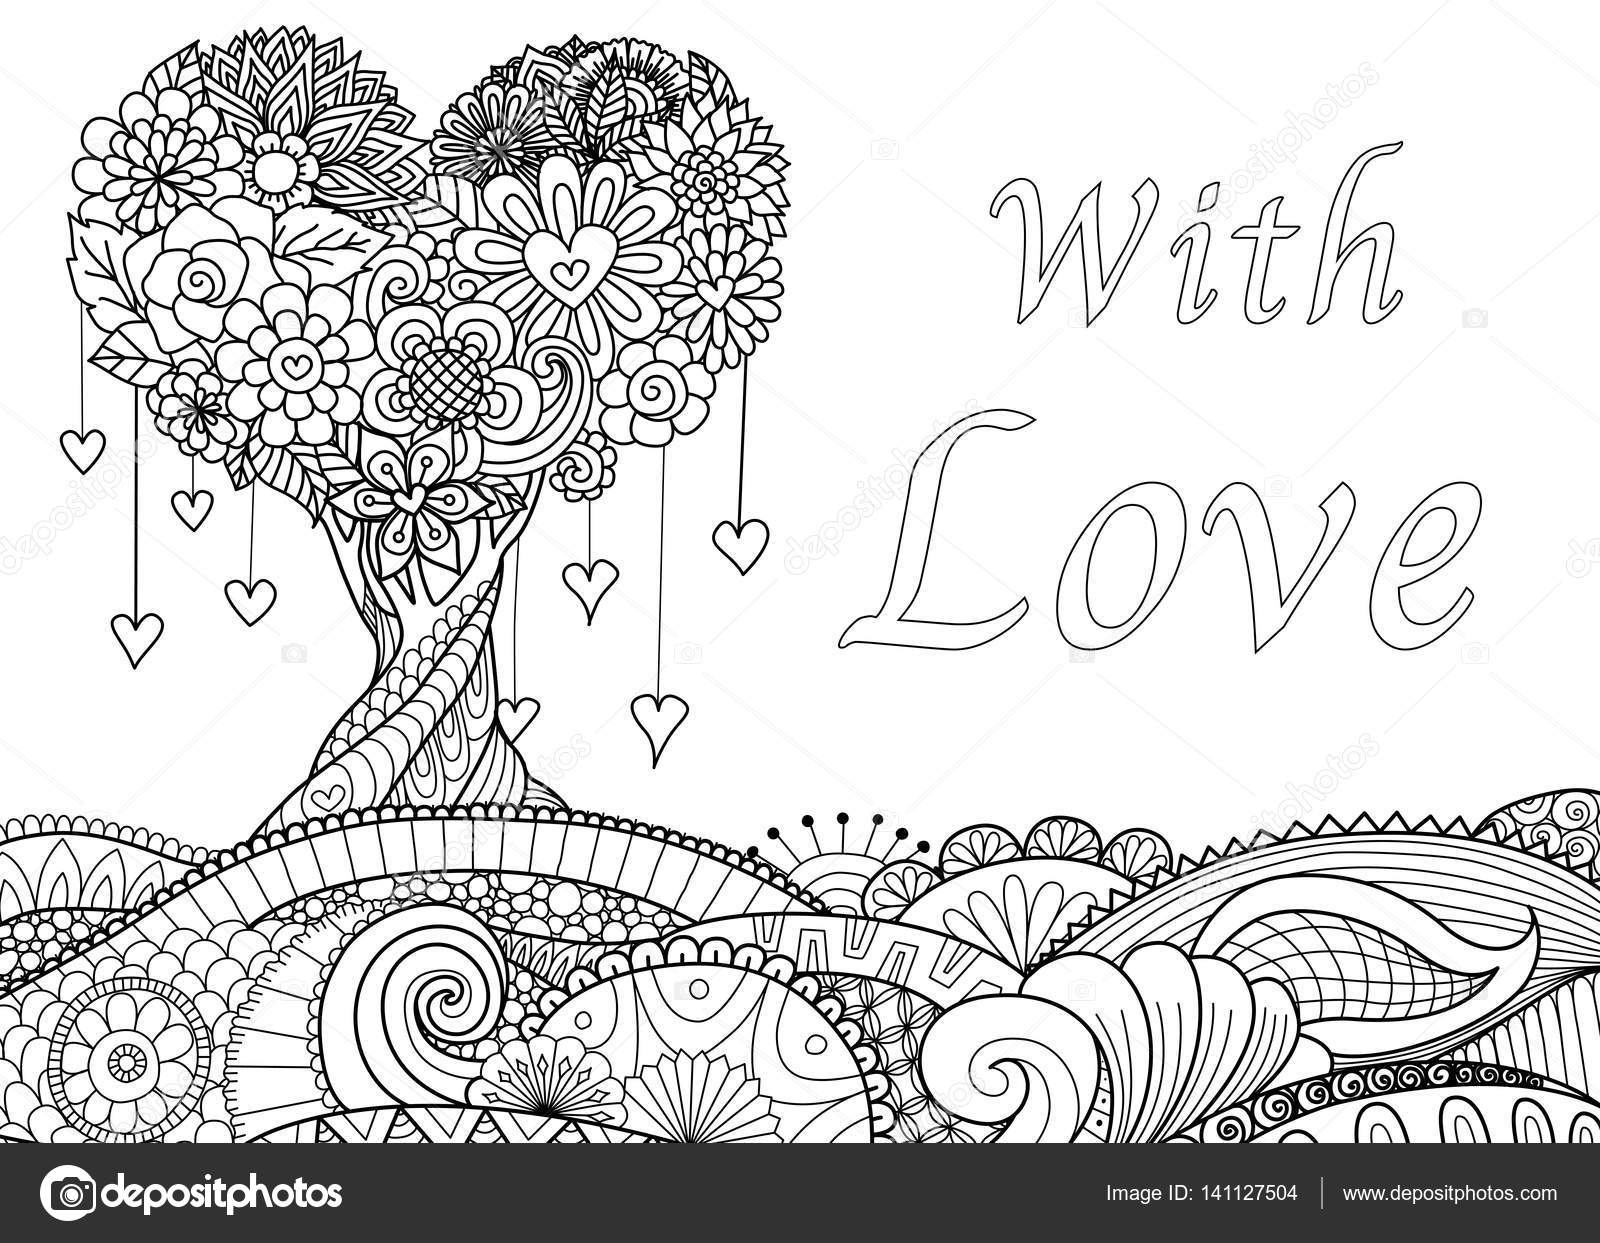 Love Tree On Floral Ground For Adult Coloring Book Pages Valentines Card Wedding Invitation